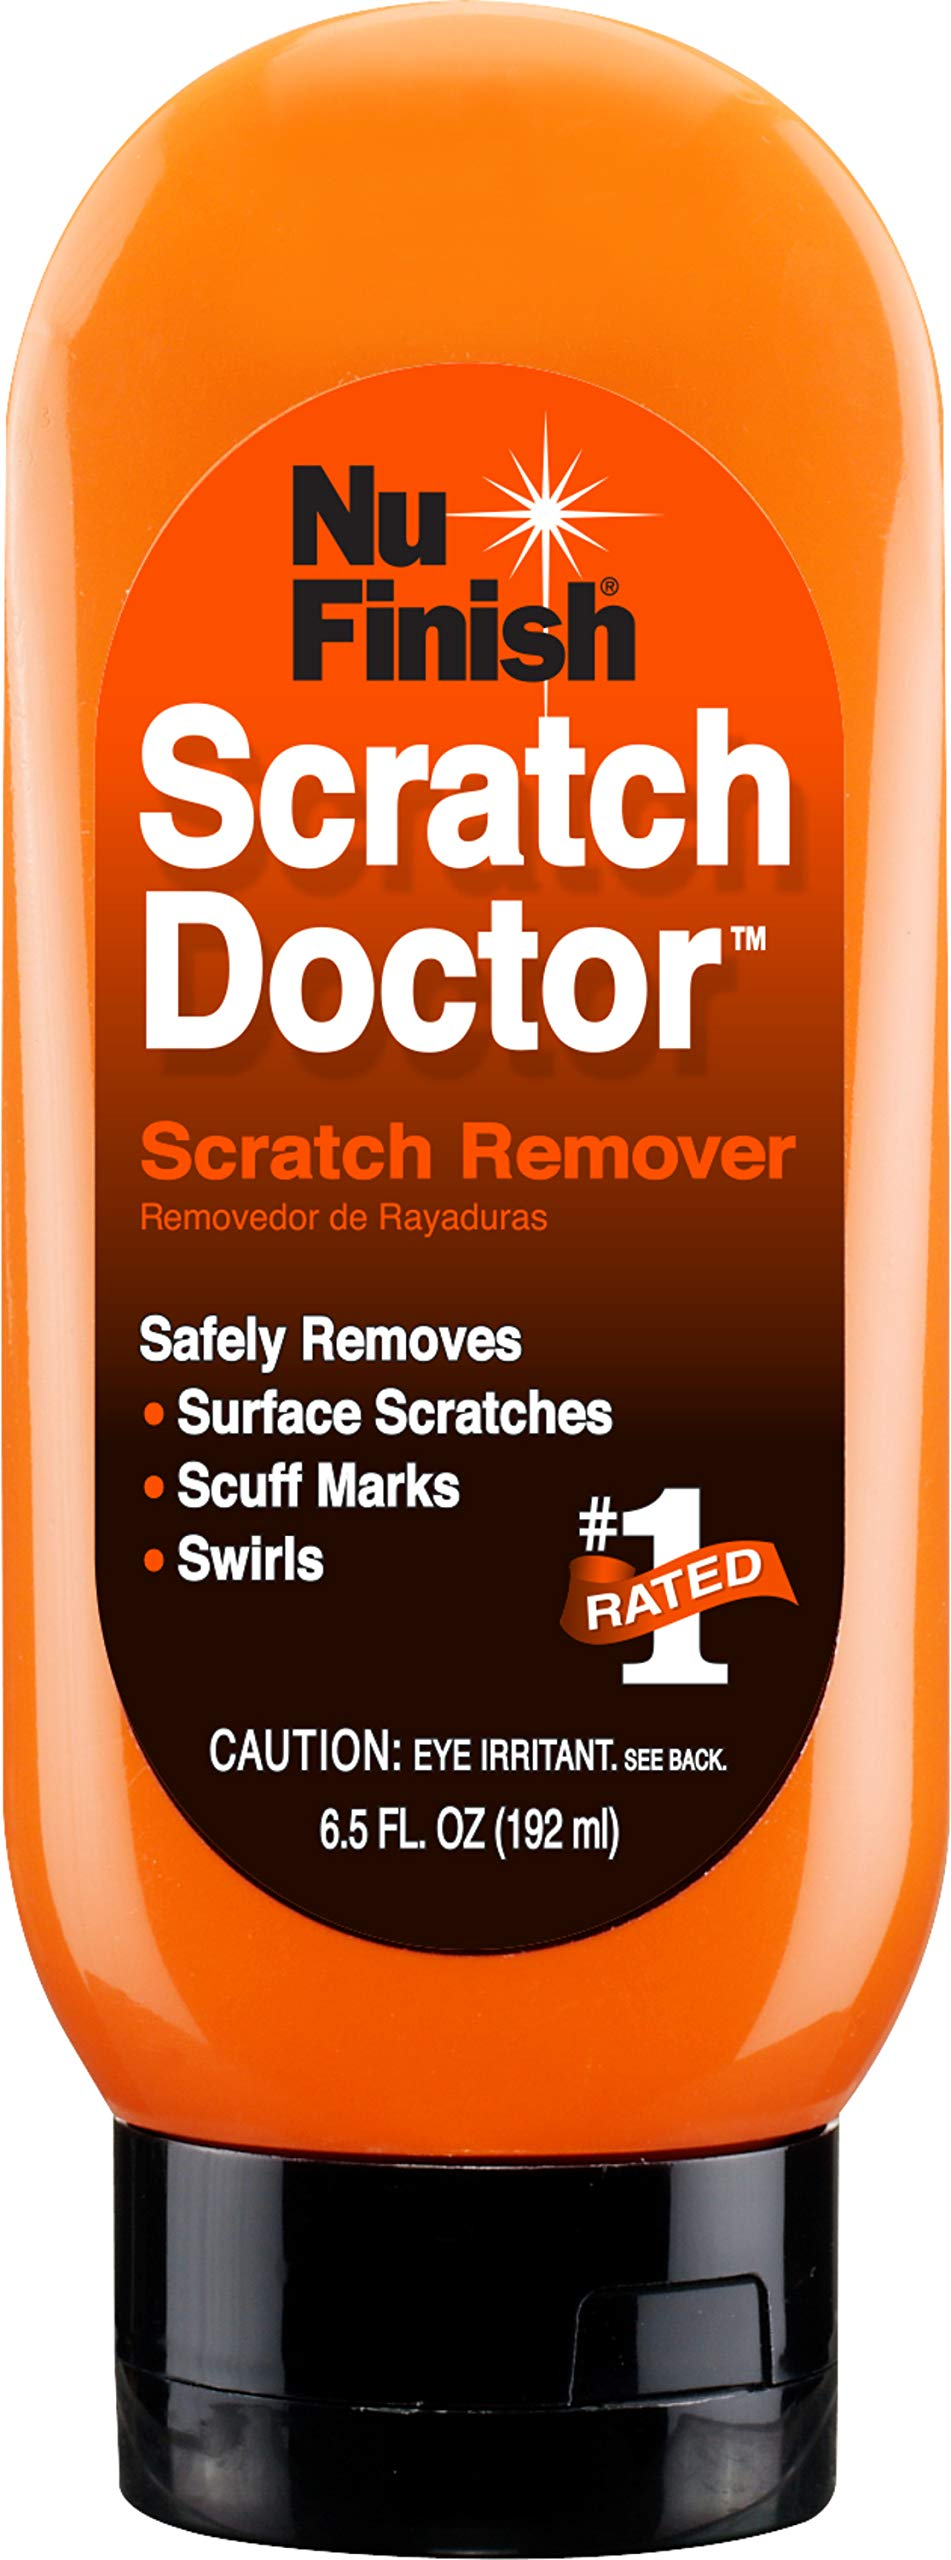 Nu Finish Car Scratch Remover, Scratch Removal for Cars - Perfect for Removing Paint Scrapes, Scuffs, Haze and Swirl Marks on Cars, Fiberglass Boats, Motorcycles and Chrome Appliances (1 Pack)